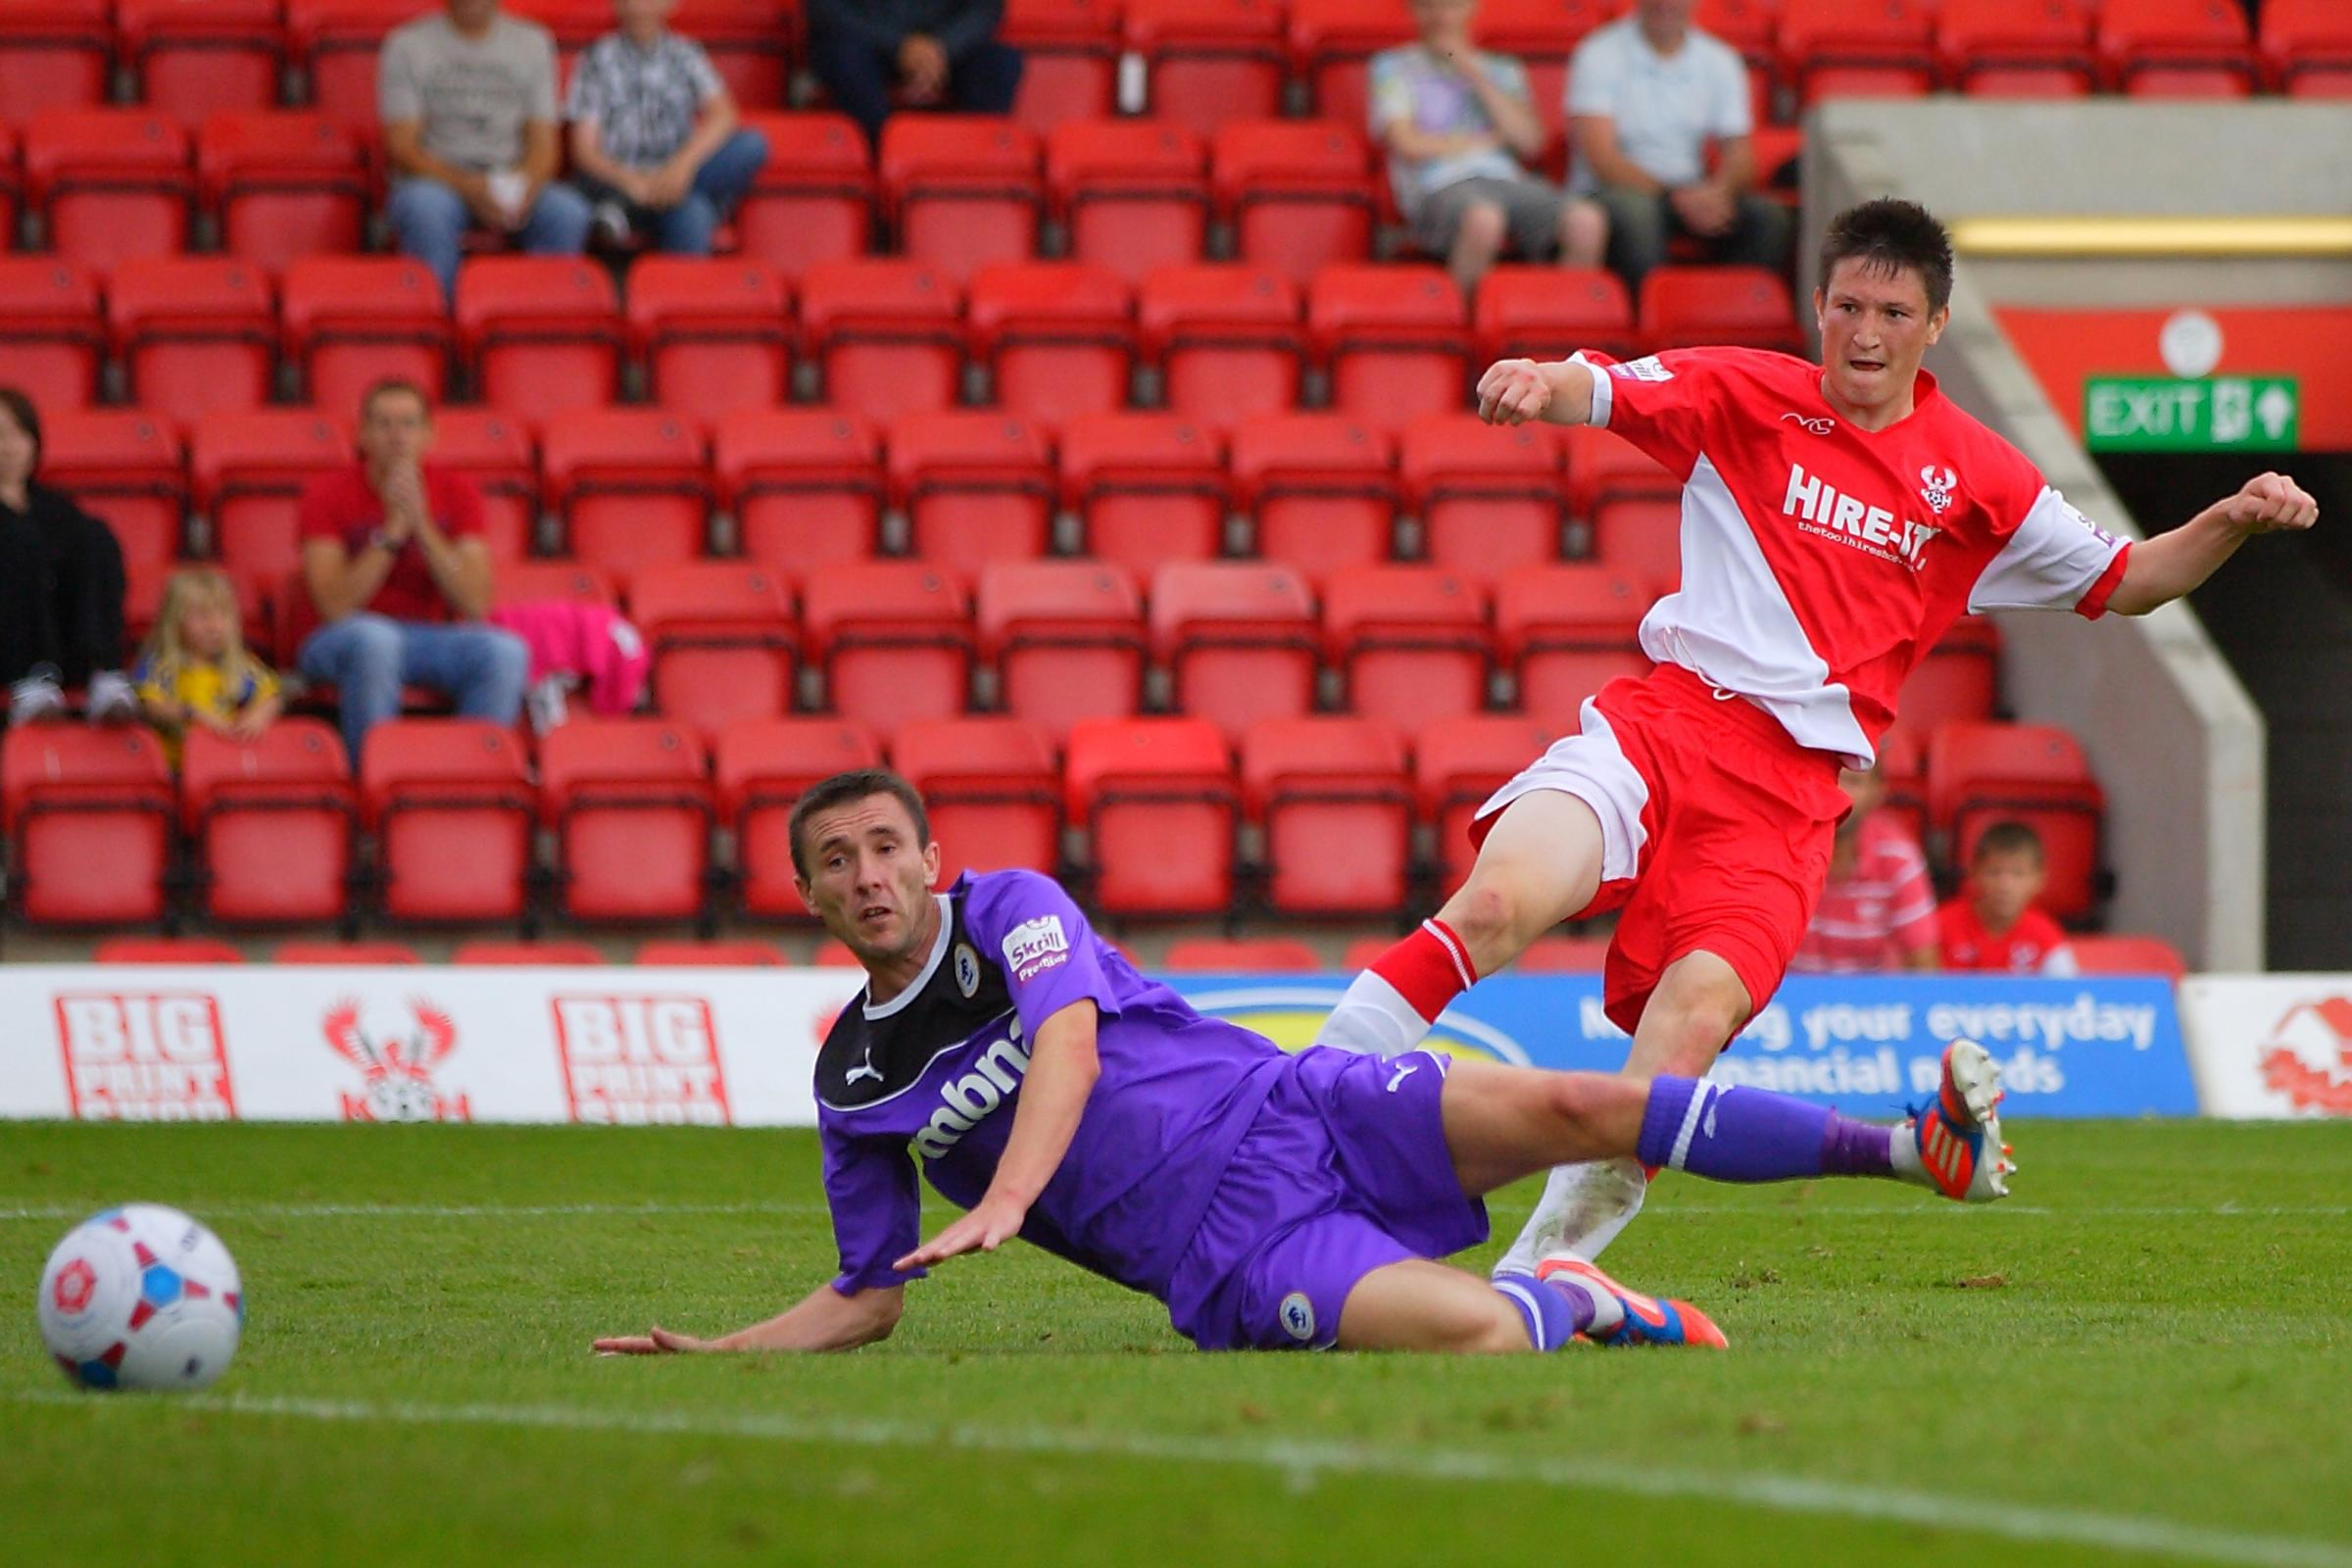 Great talent: Joe Lolley who scored a spectacular goal and made the other last night against Halifax.